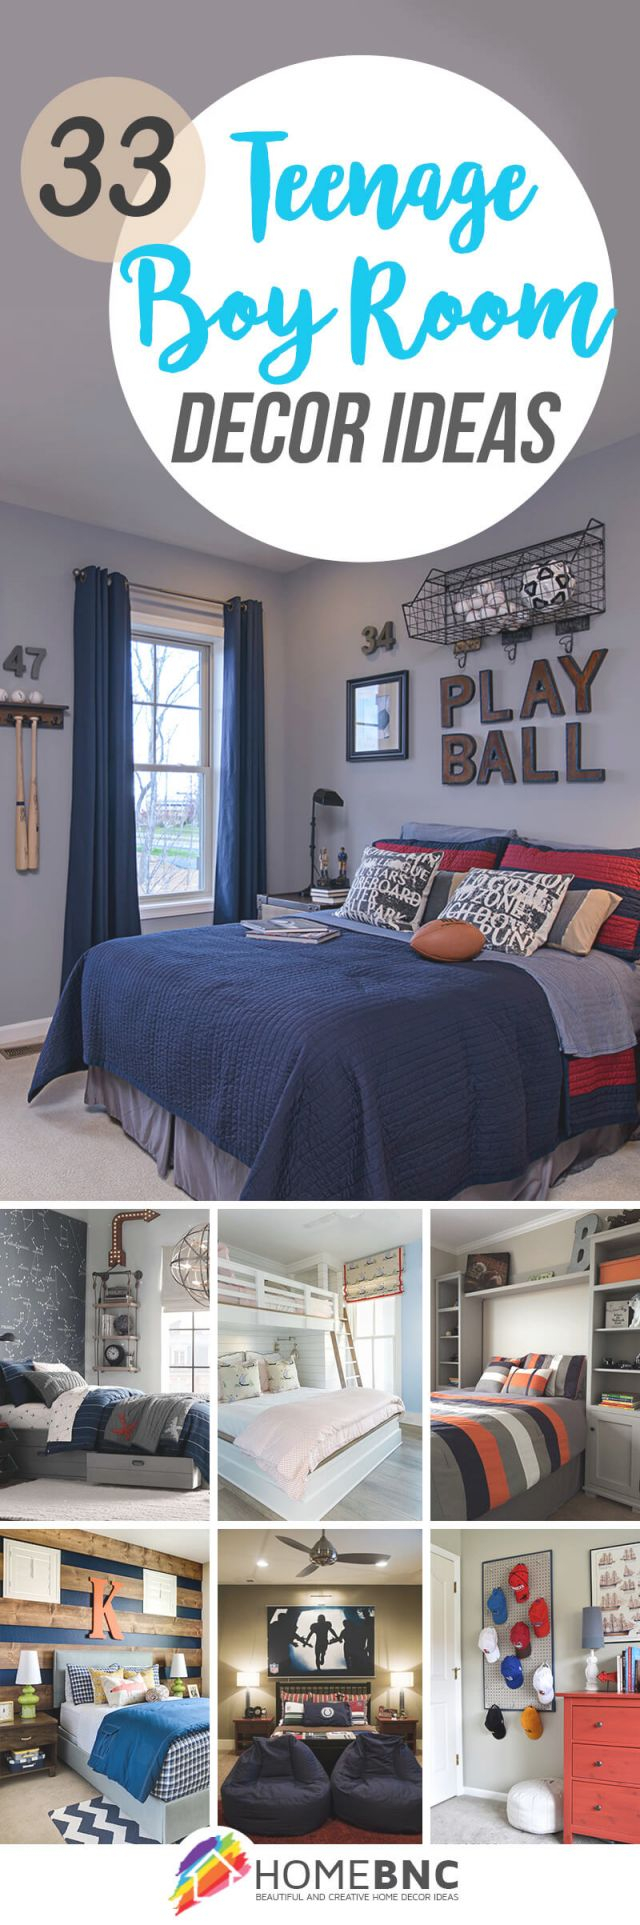 33 Best Teenage Boy Room Decor Ideas And Designs For 2020 intended for Football Bedroom Decorating Ideas